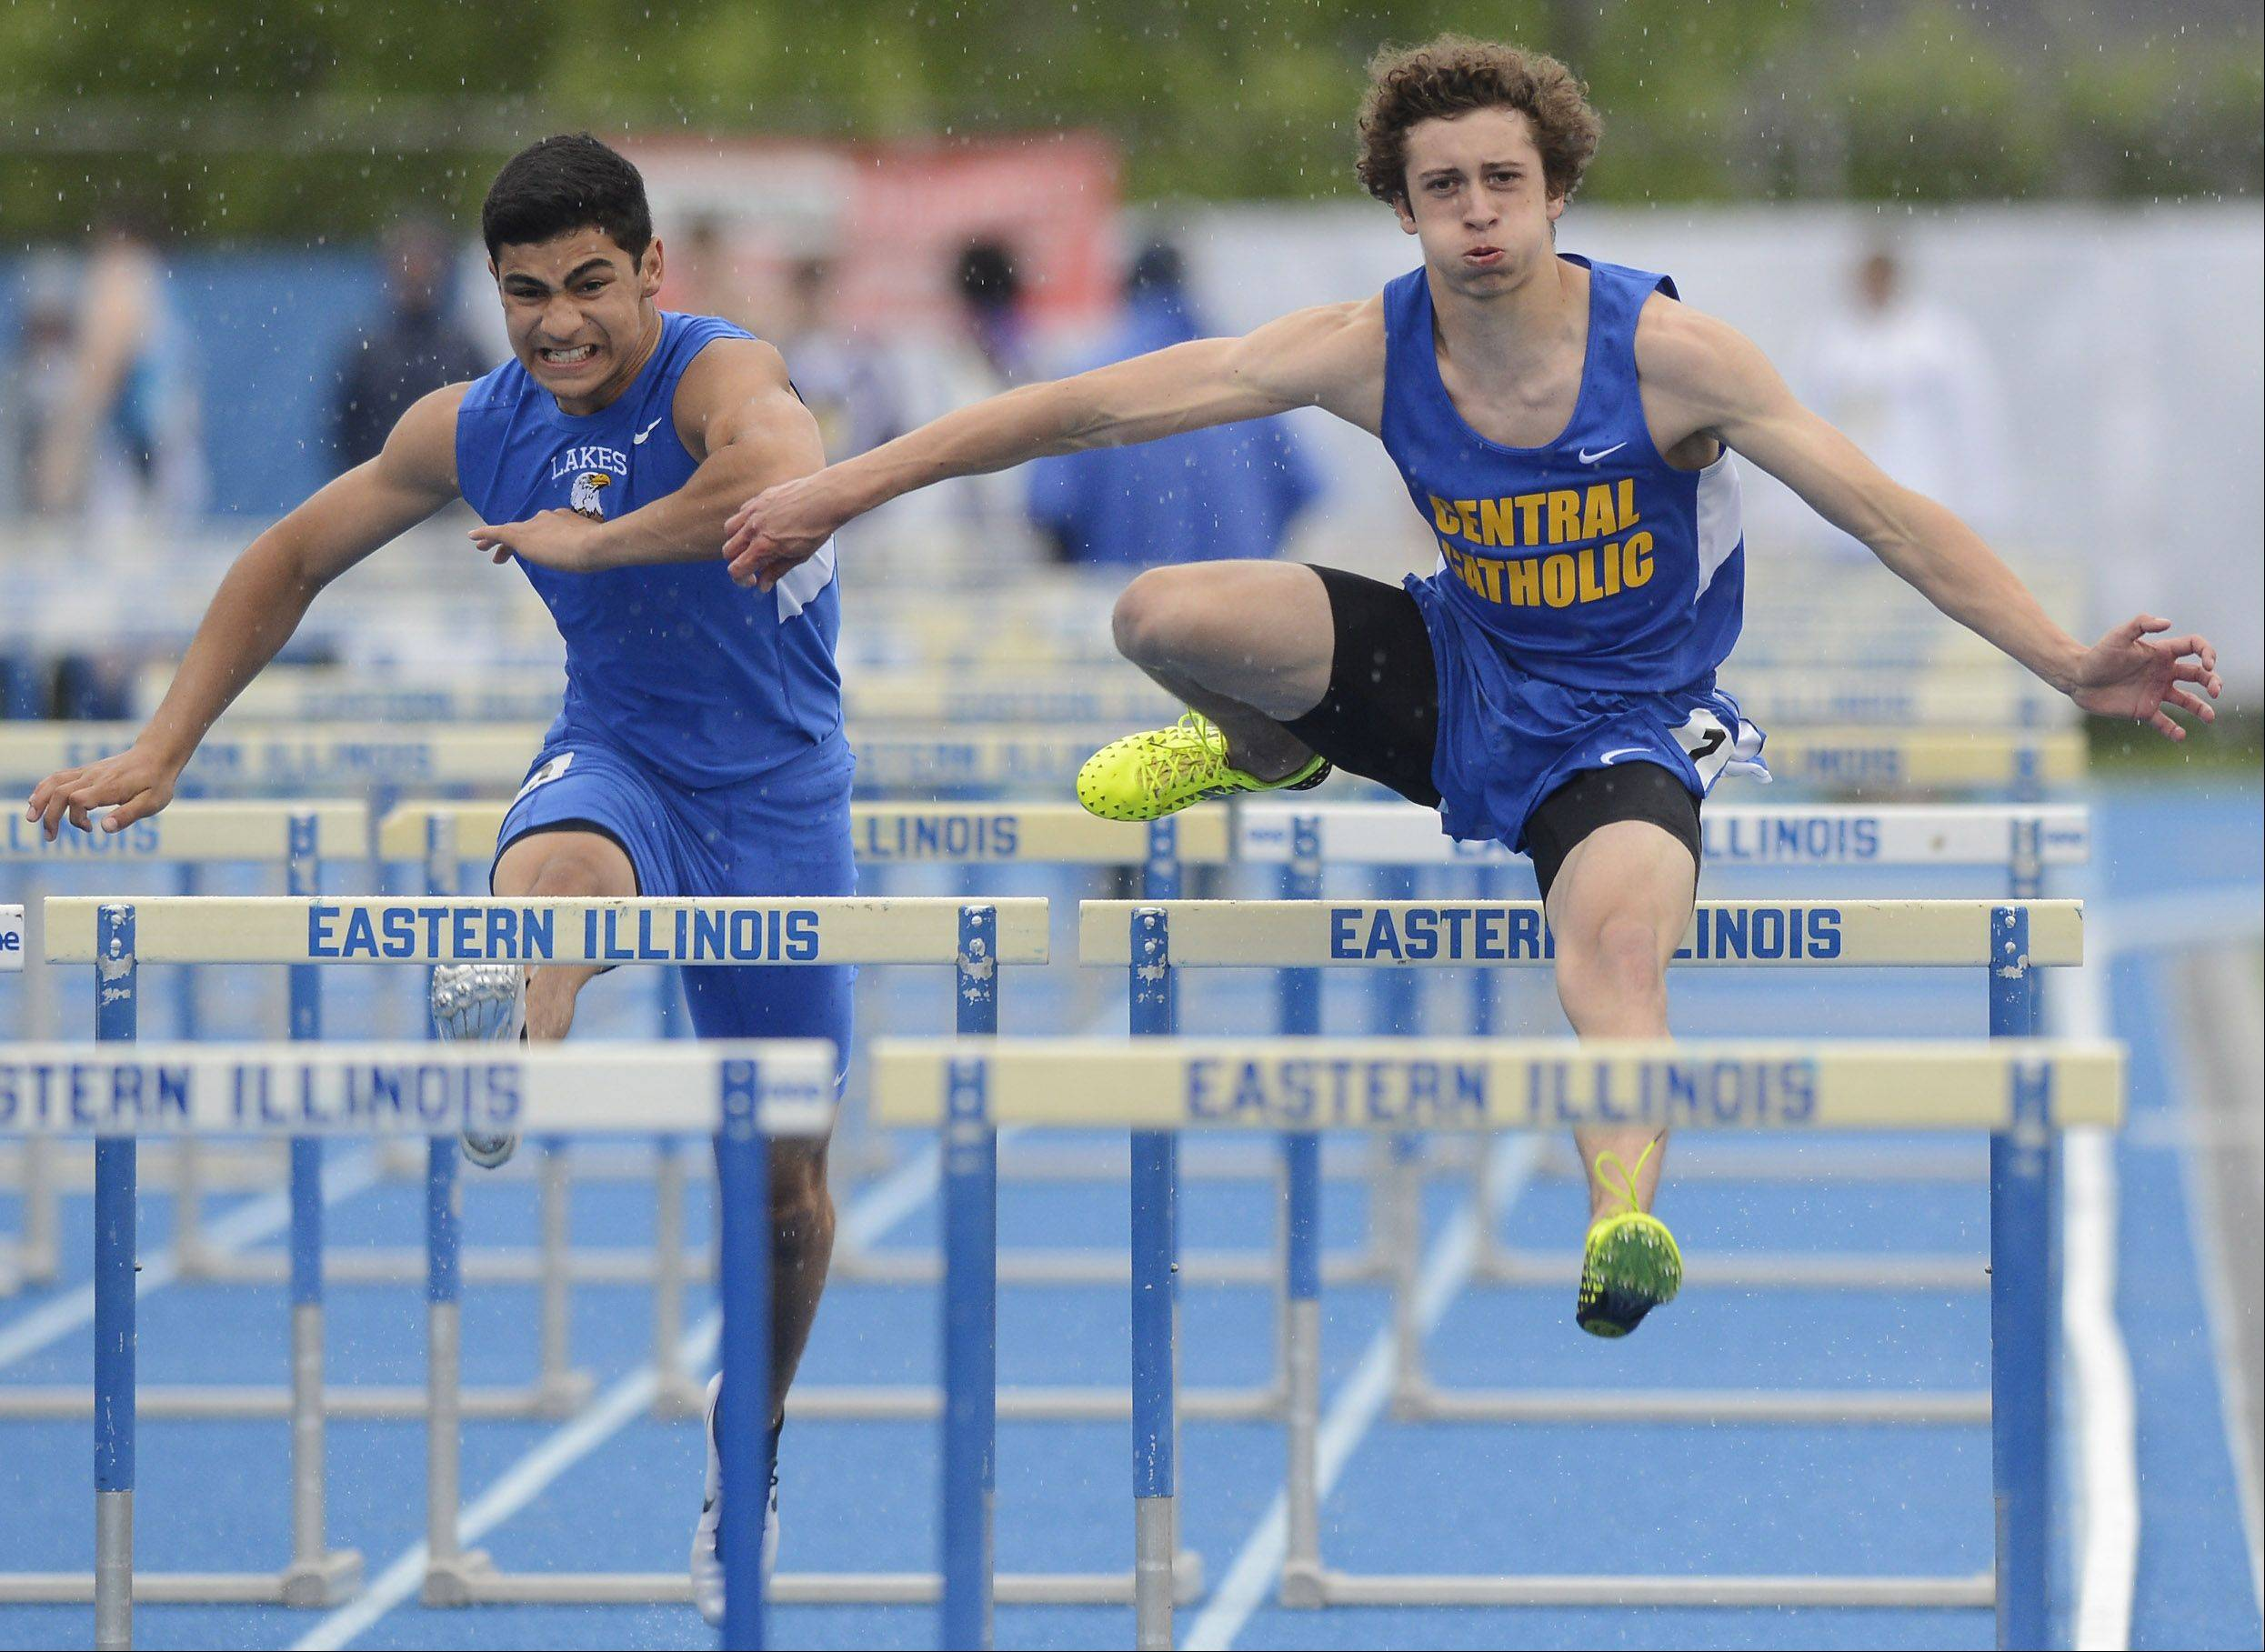 Rodolphe Boyer, left, of Lakes, and Patrick Lefevre of Aurora Central Catholic run alongside each other in the Class 2A 110-meter high hurdles during the boys track state finals in Charleston on Saturday.